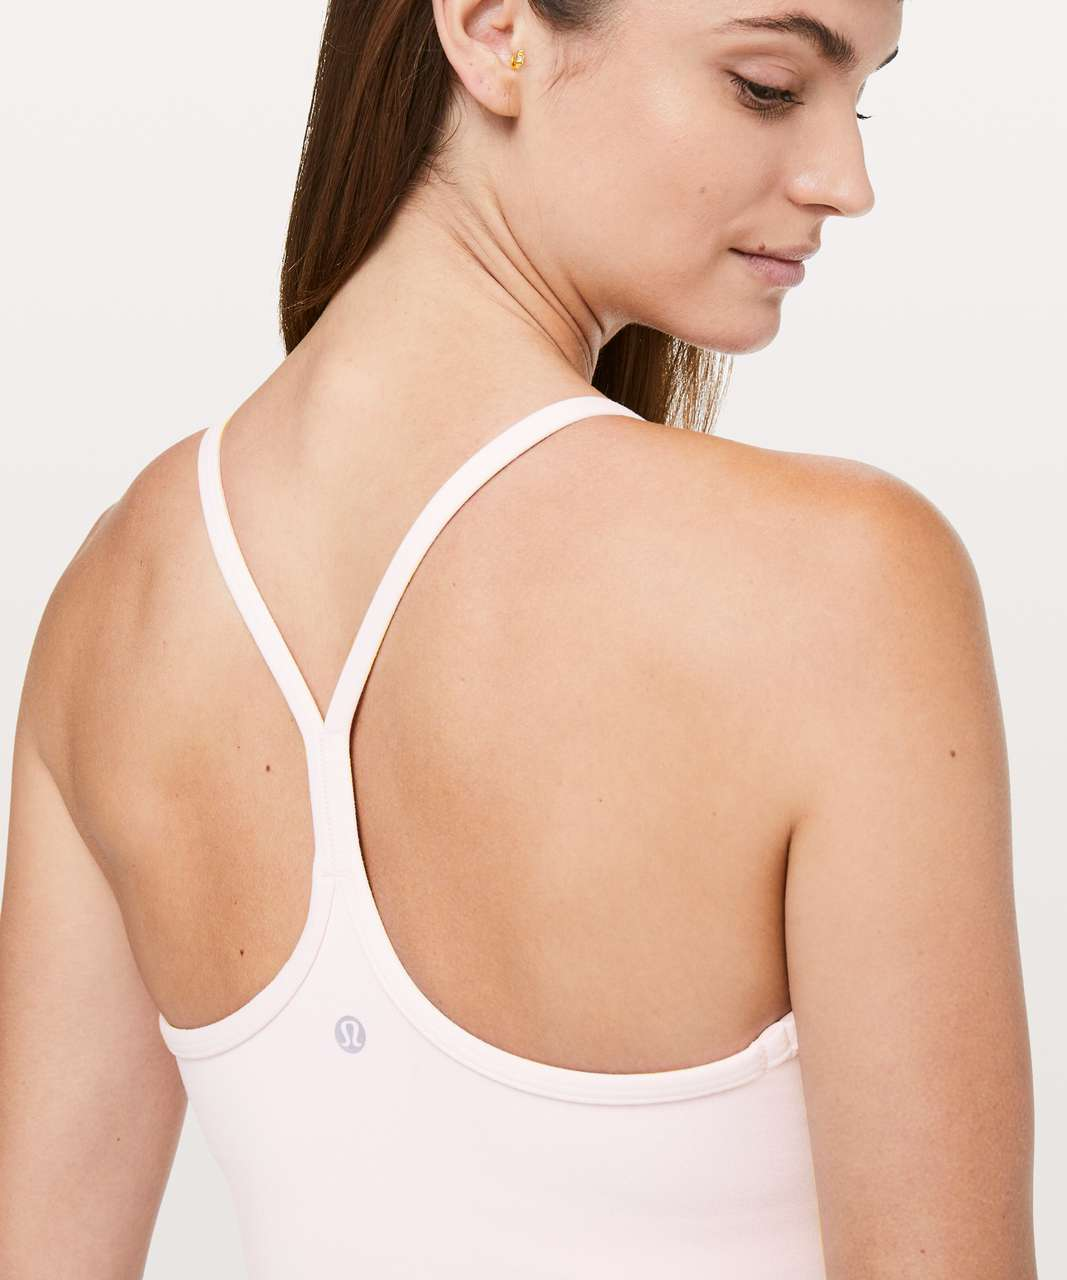 Lululemon Power Y Tank *Luon - Blissful Pink